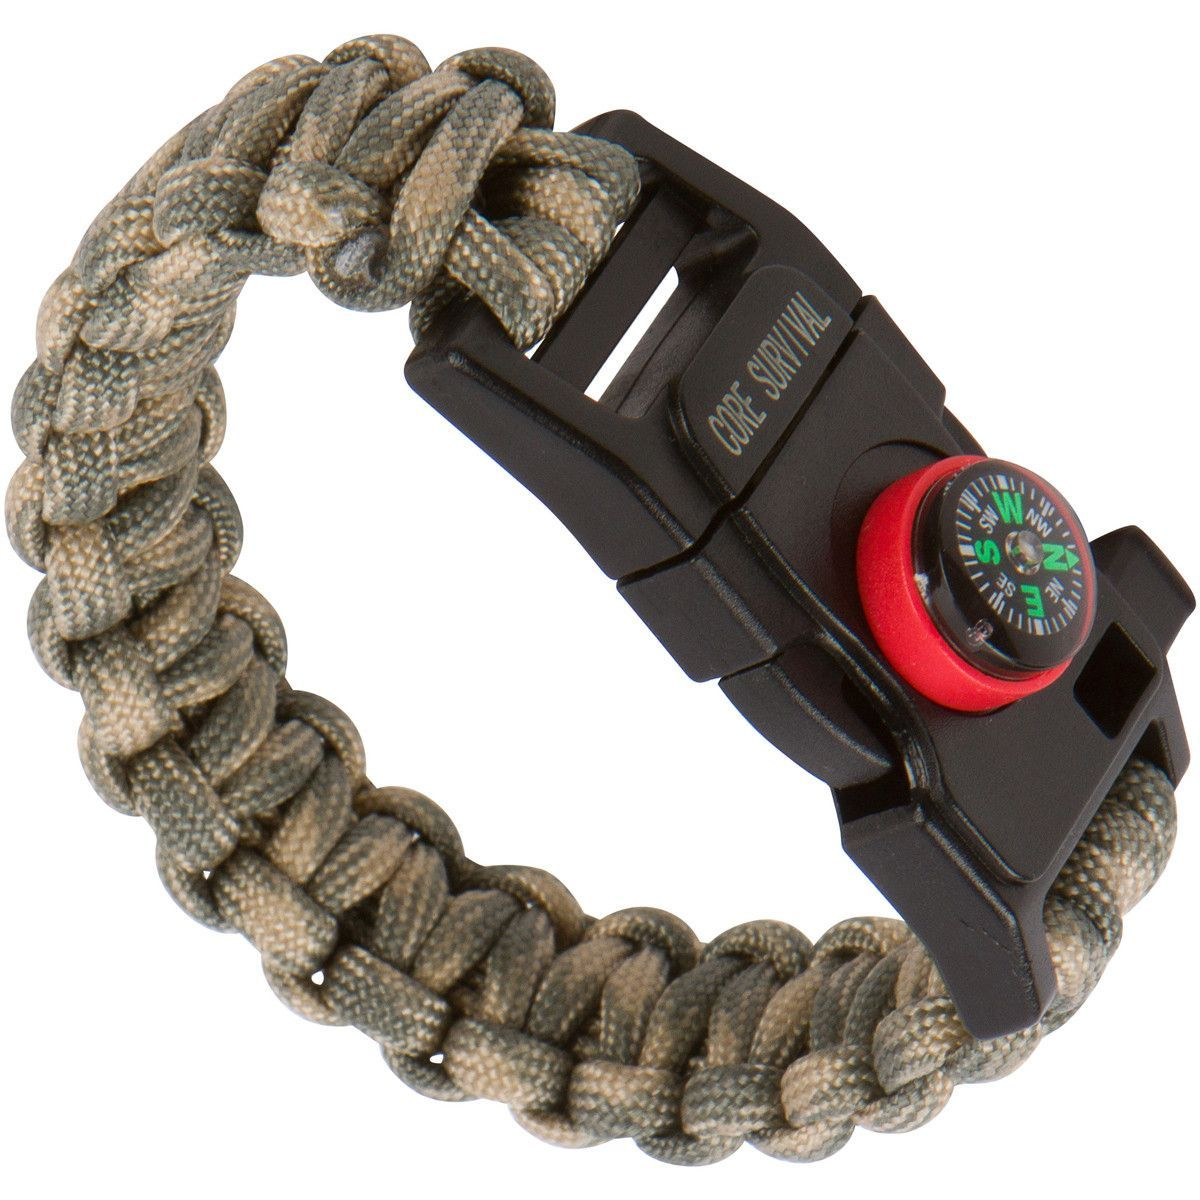 Paracord Survival Bracelet (Small) Womens hunting gear